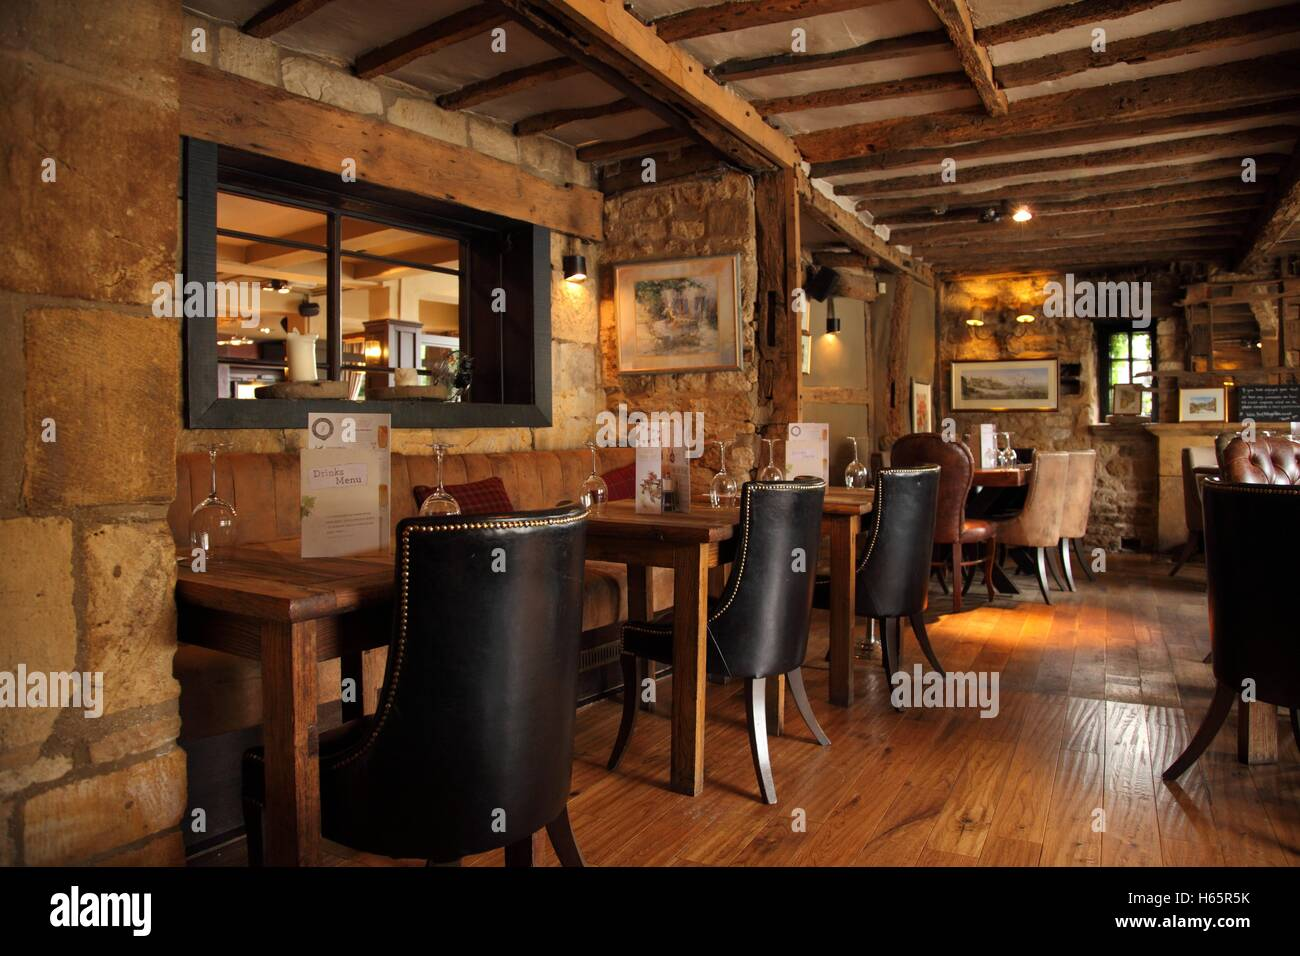 Interior Of A Country Pub With Wooden Floor Beams Olde